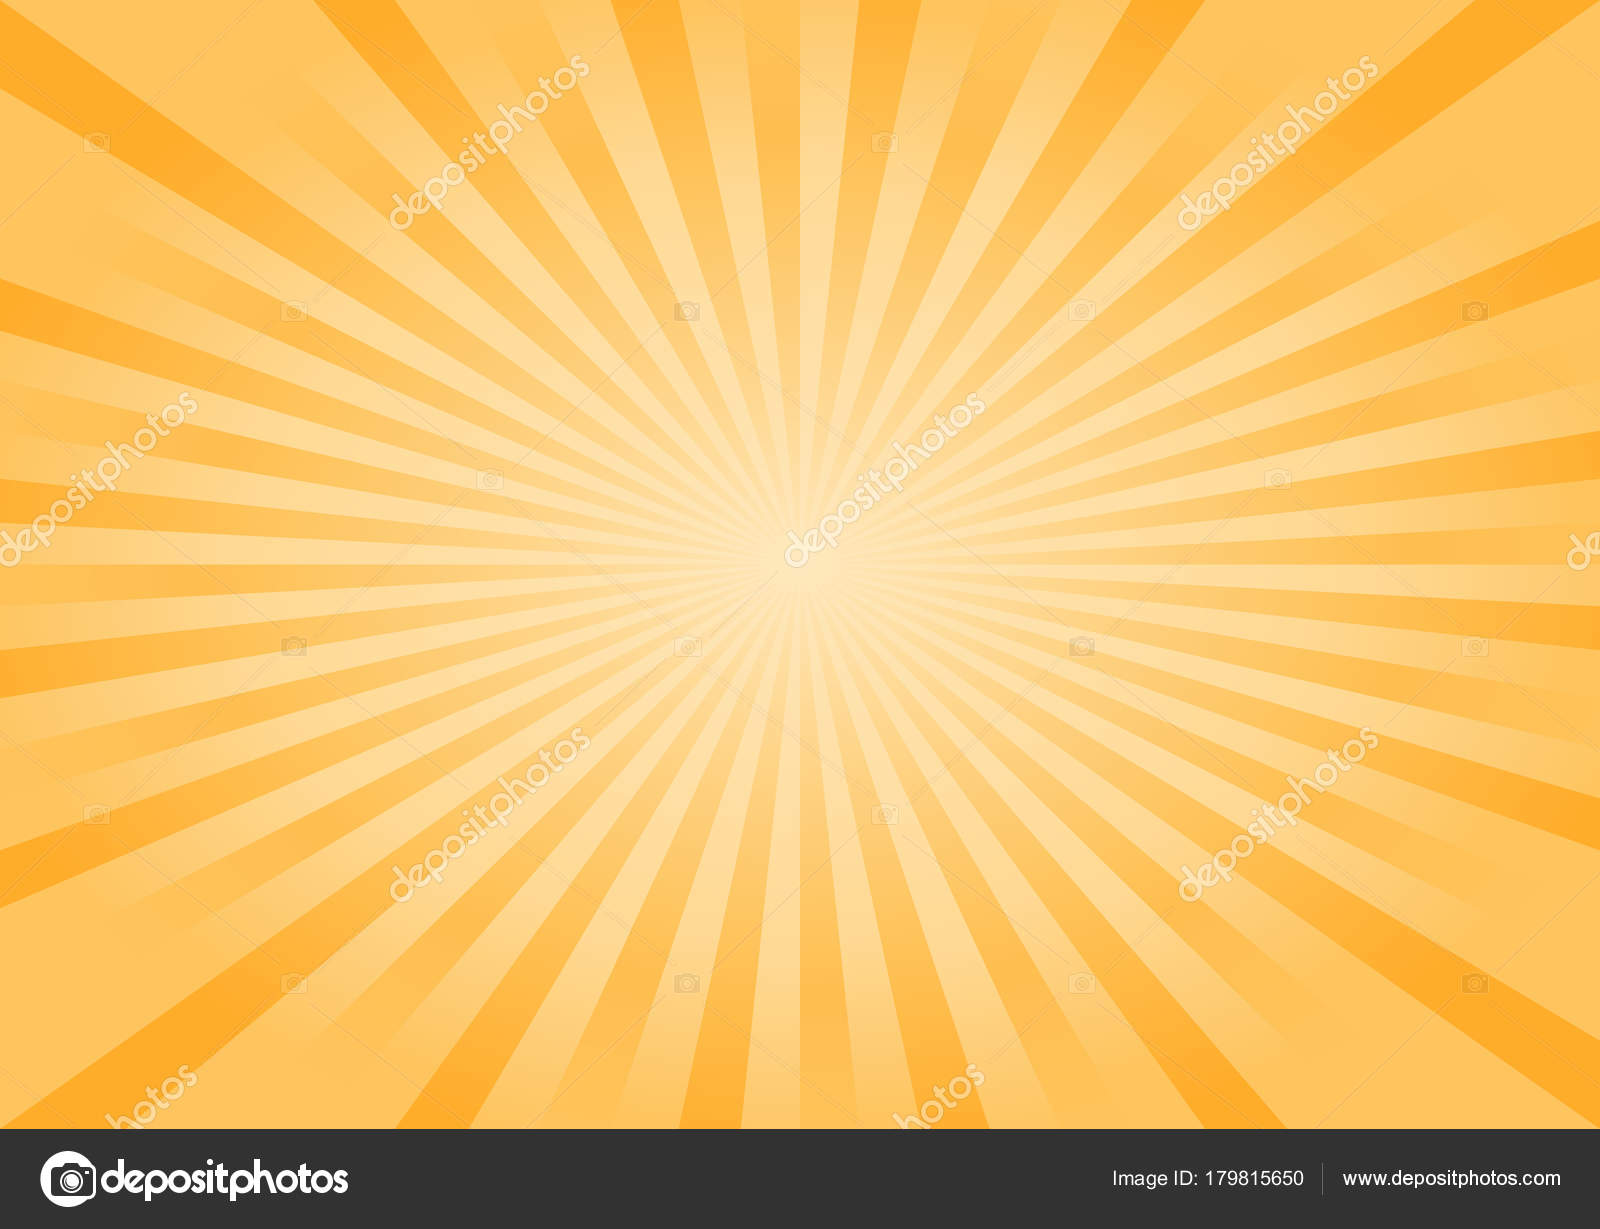 Abstract Bright Yellow Orange Rays Background Vector Eps